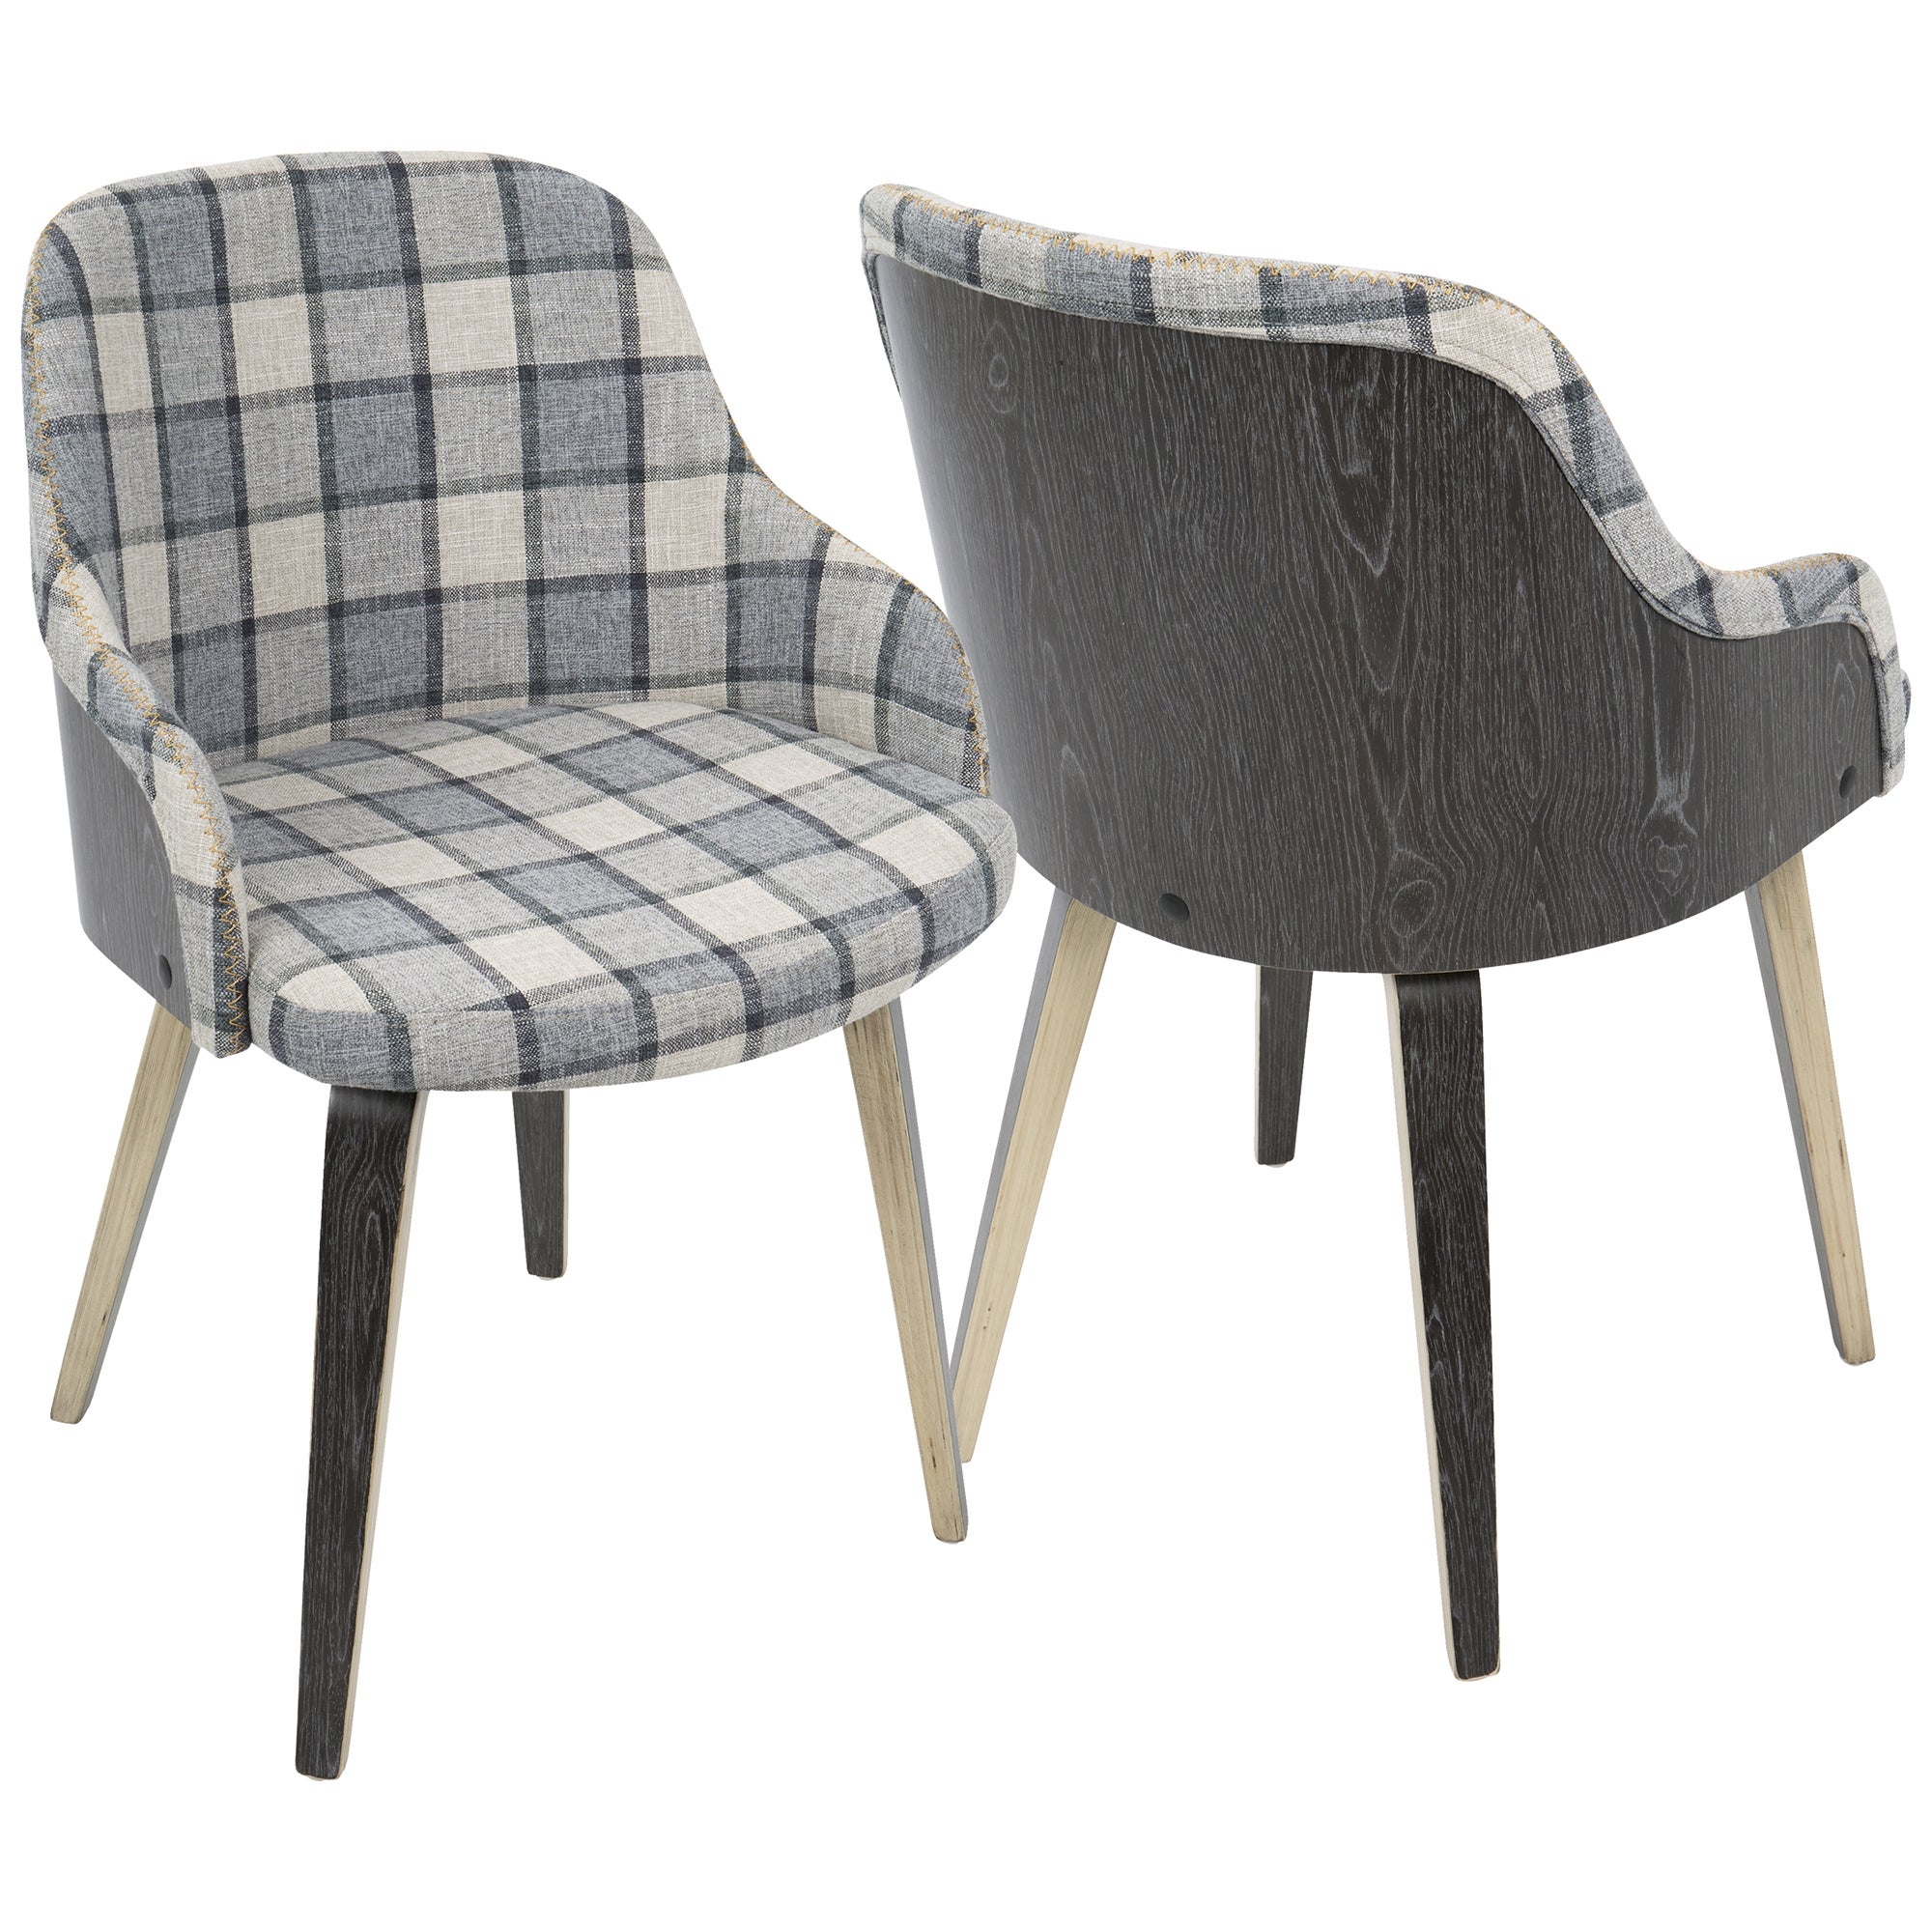 Shop Bacci Mid Century Modern Upholstered Dining/Accent Chair   Free  Shipping Today   Overstock.com   16764440